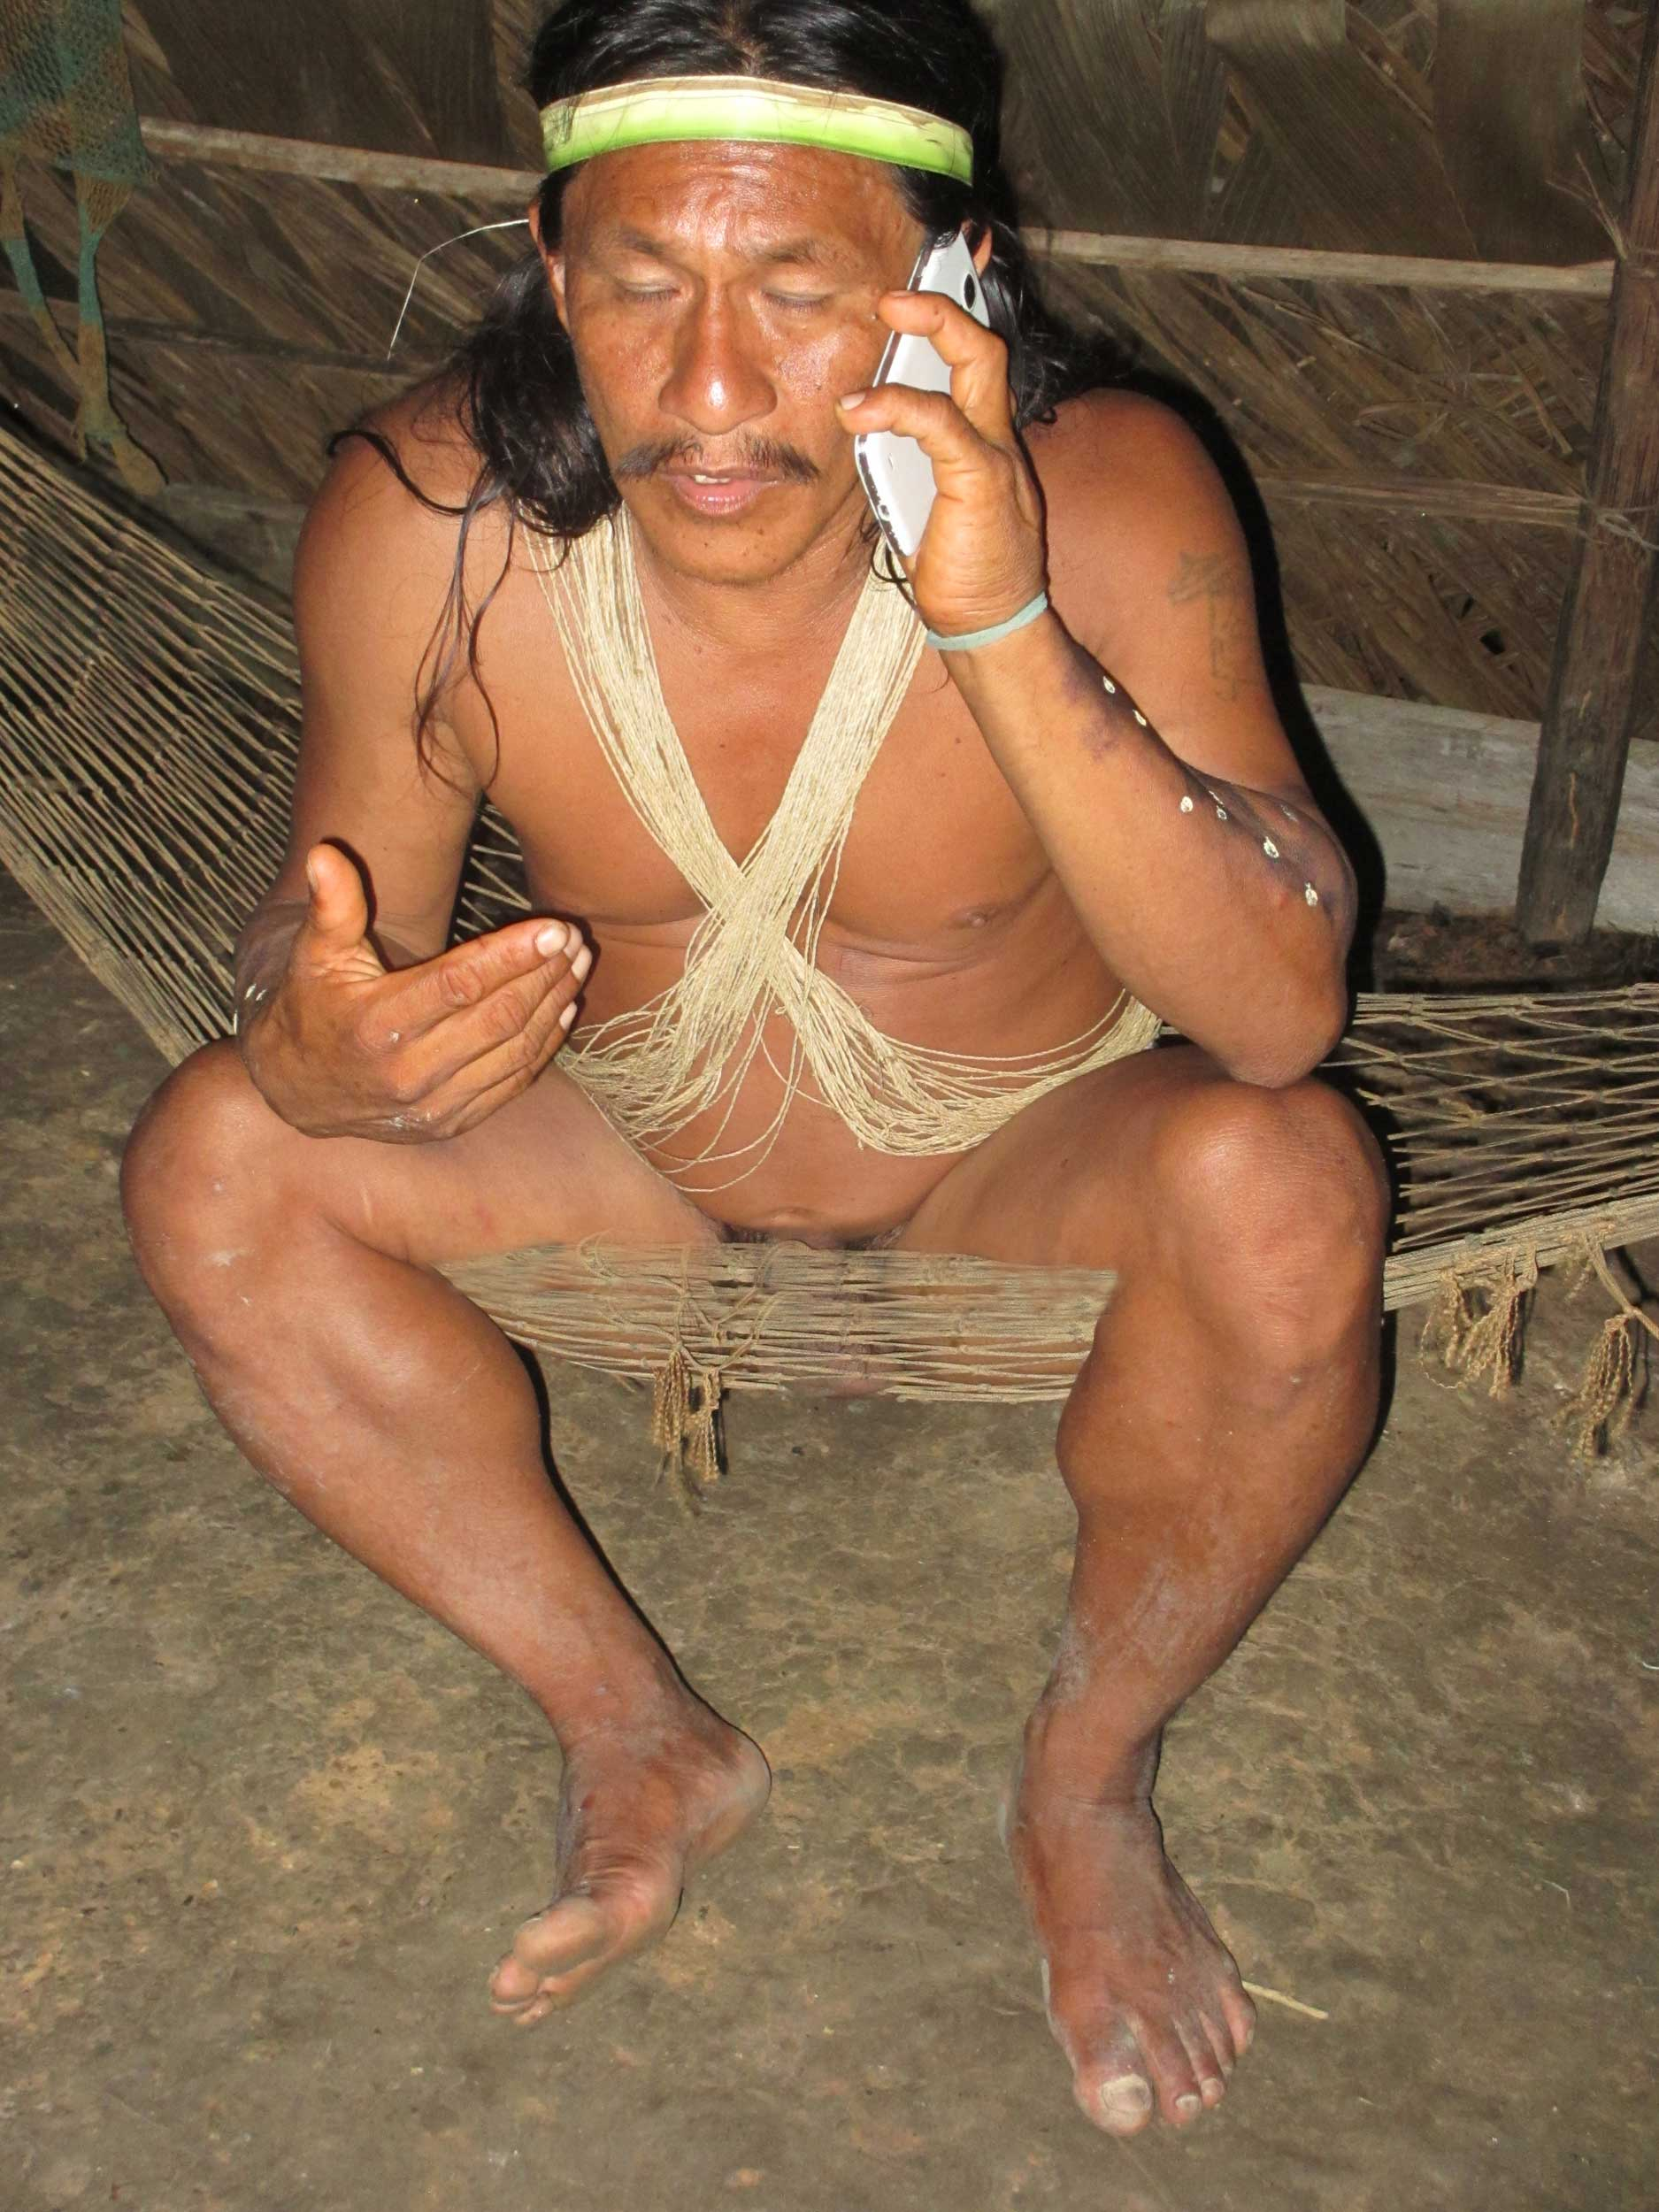 Naked man sitting in a hammock talking on a mobile phone, Bameno, Ecuador